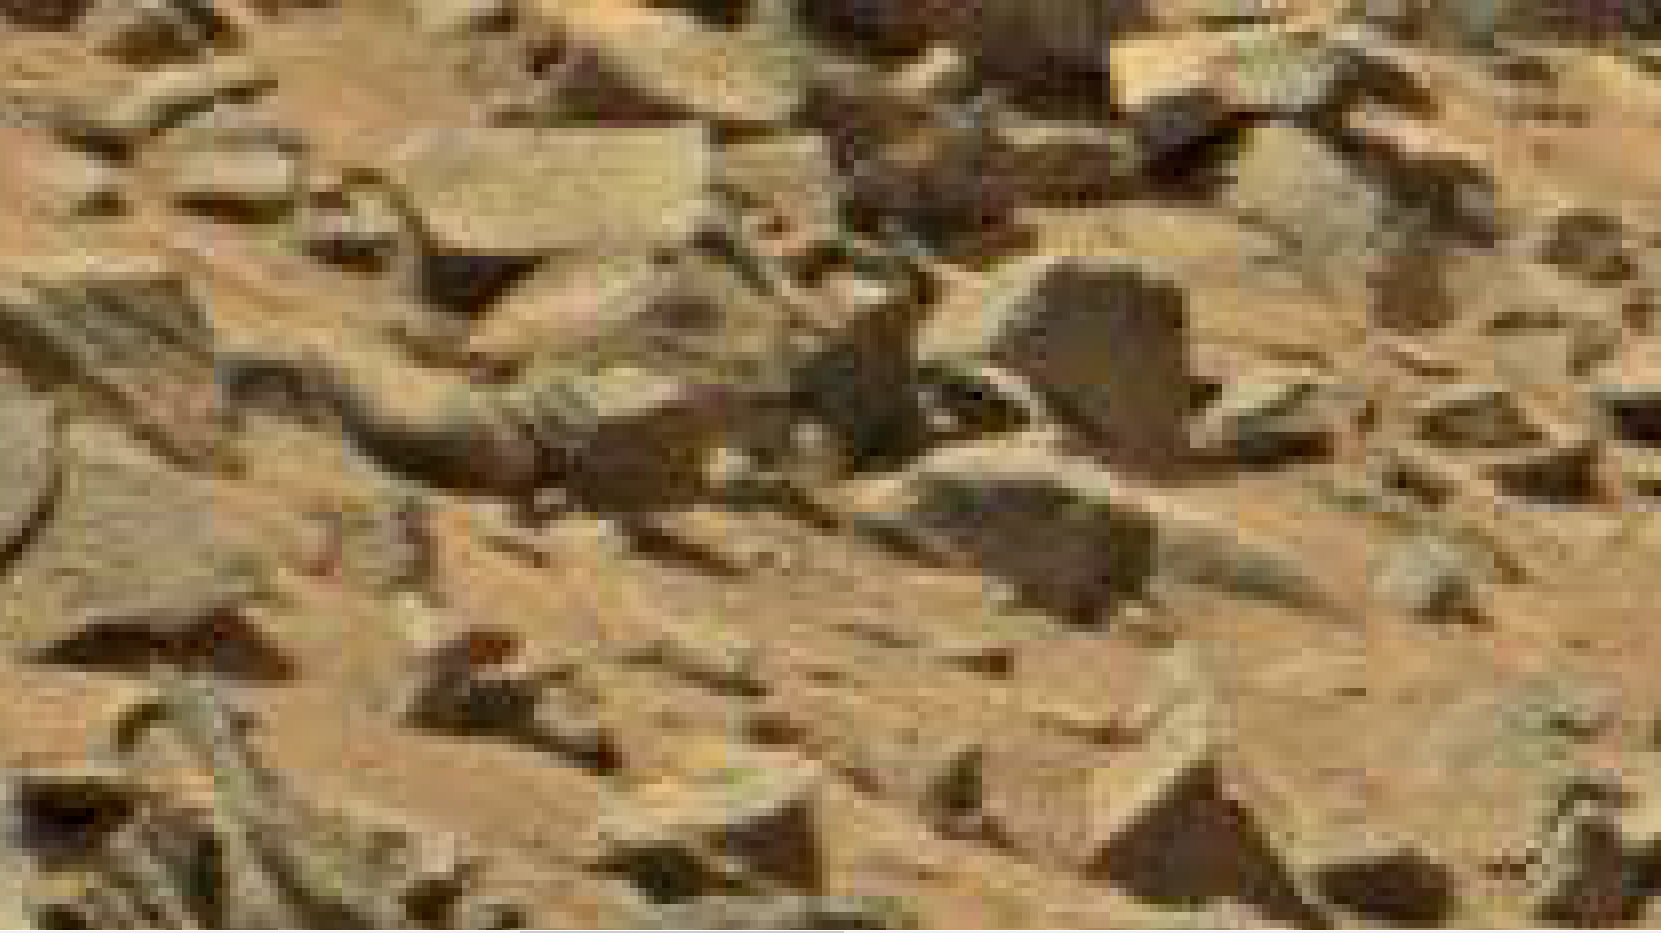 mars anomaly pie shaped stones sol 710 was life on mars